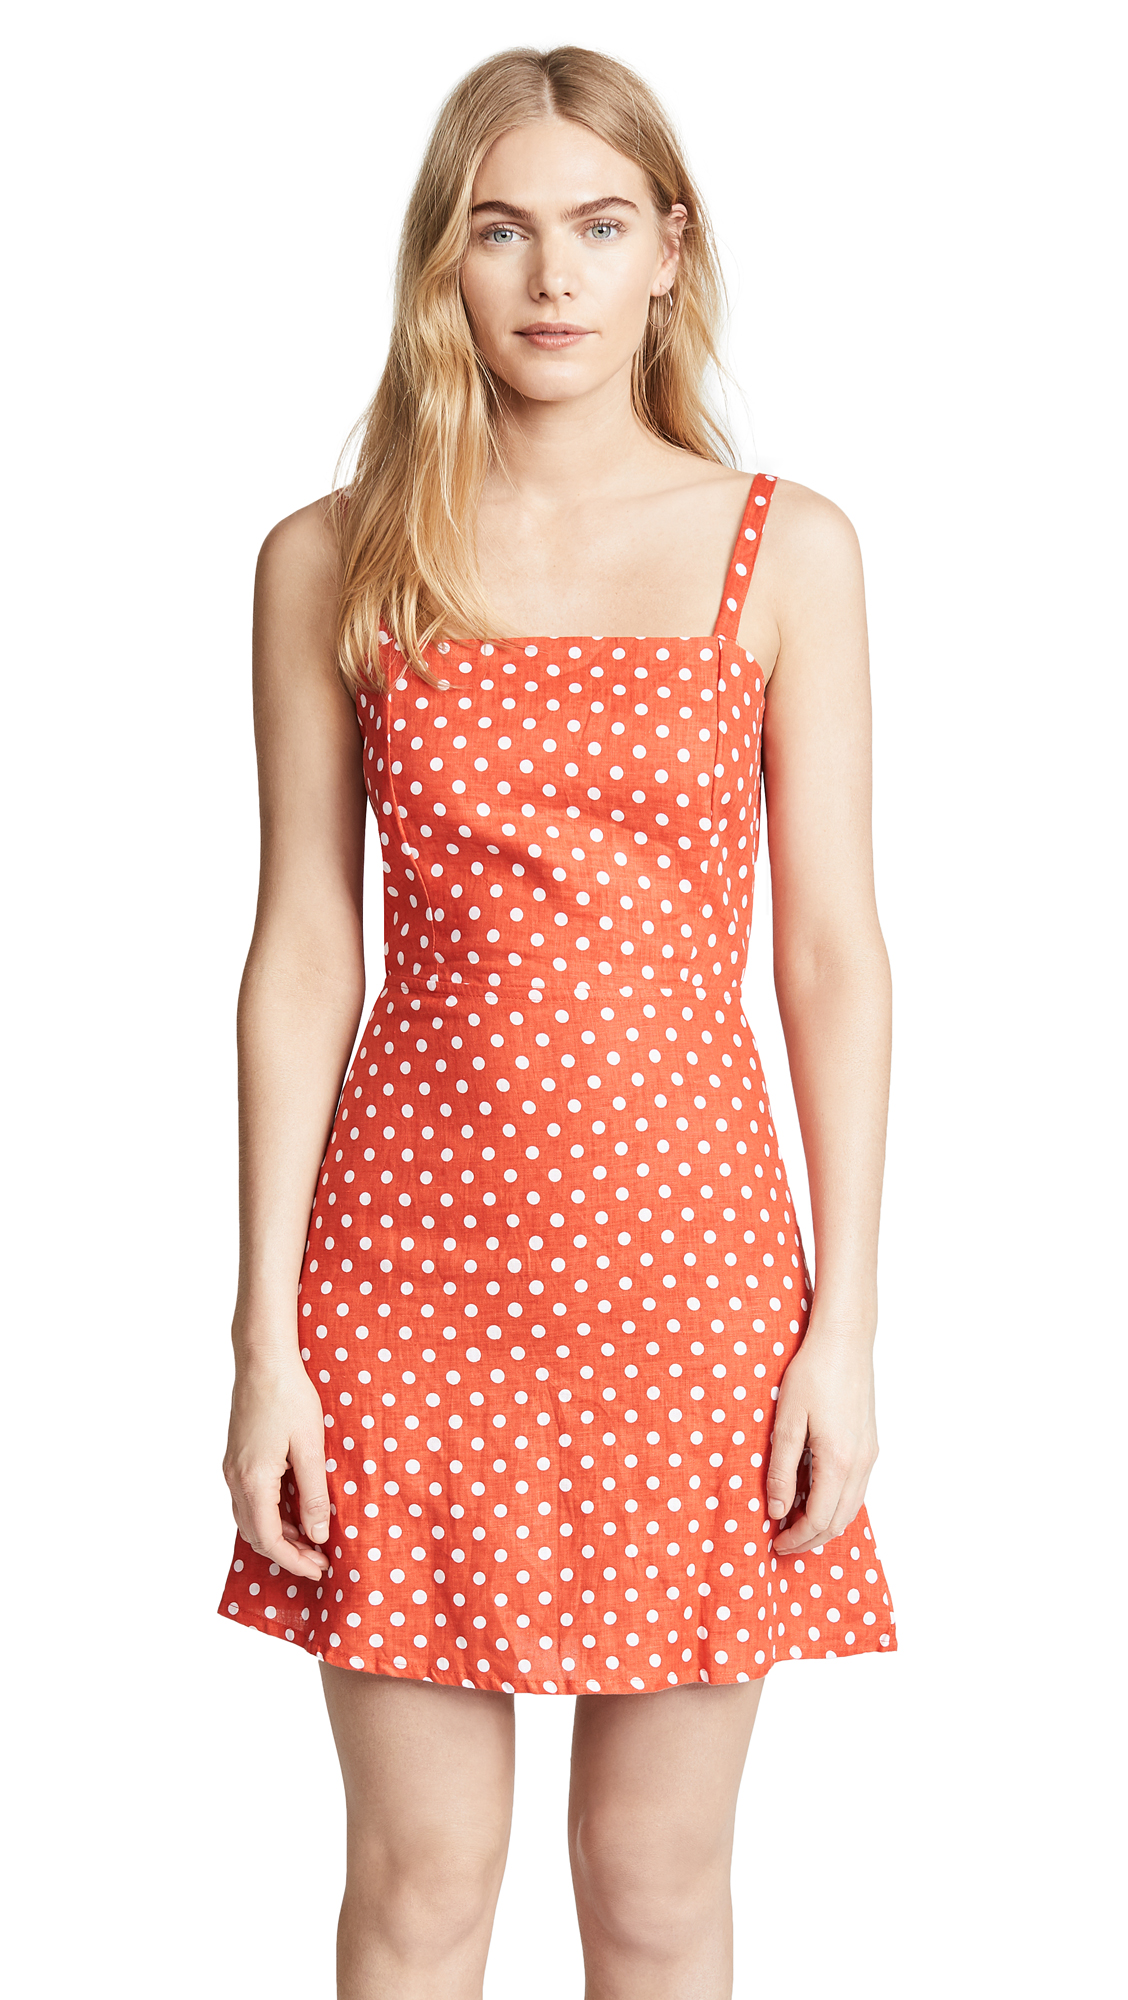 FAITHFULL THE BRAND Stepper Dress In Red Polka Dot